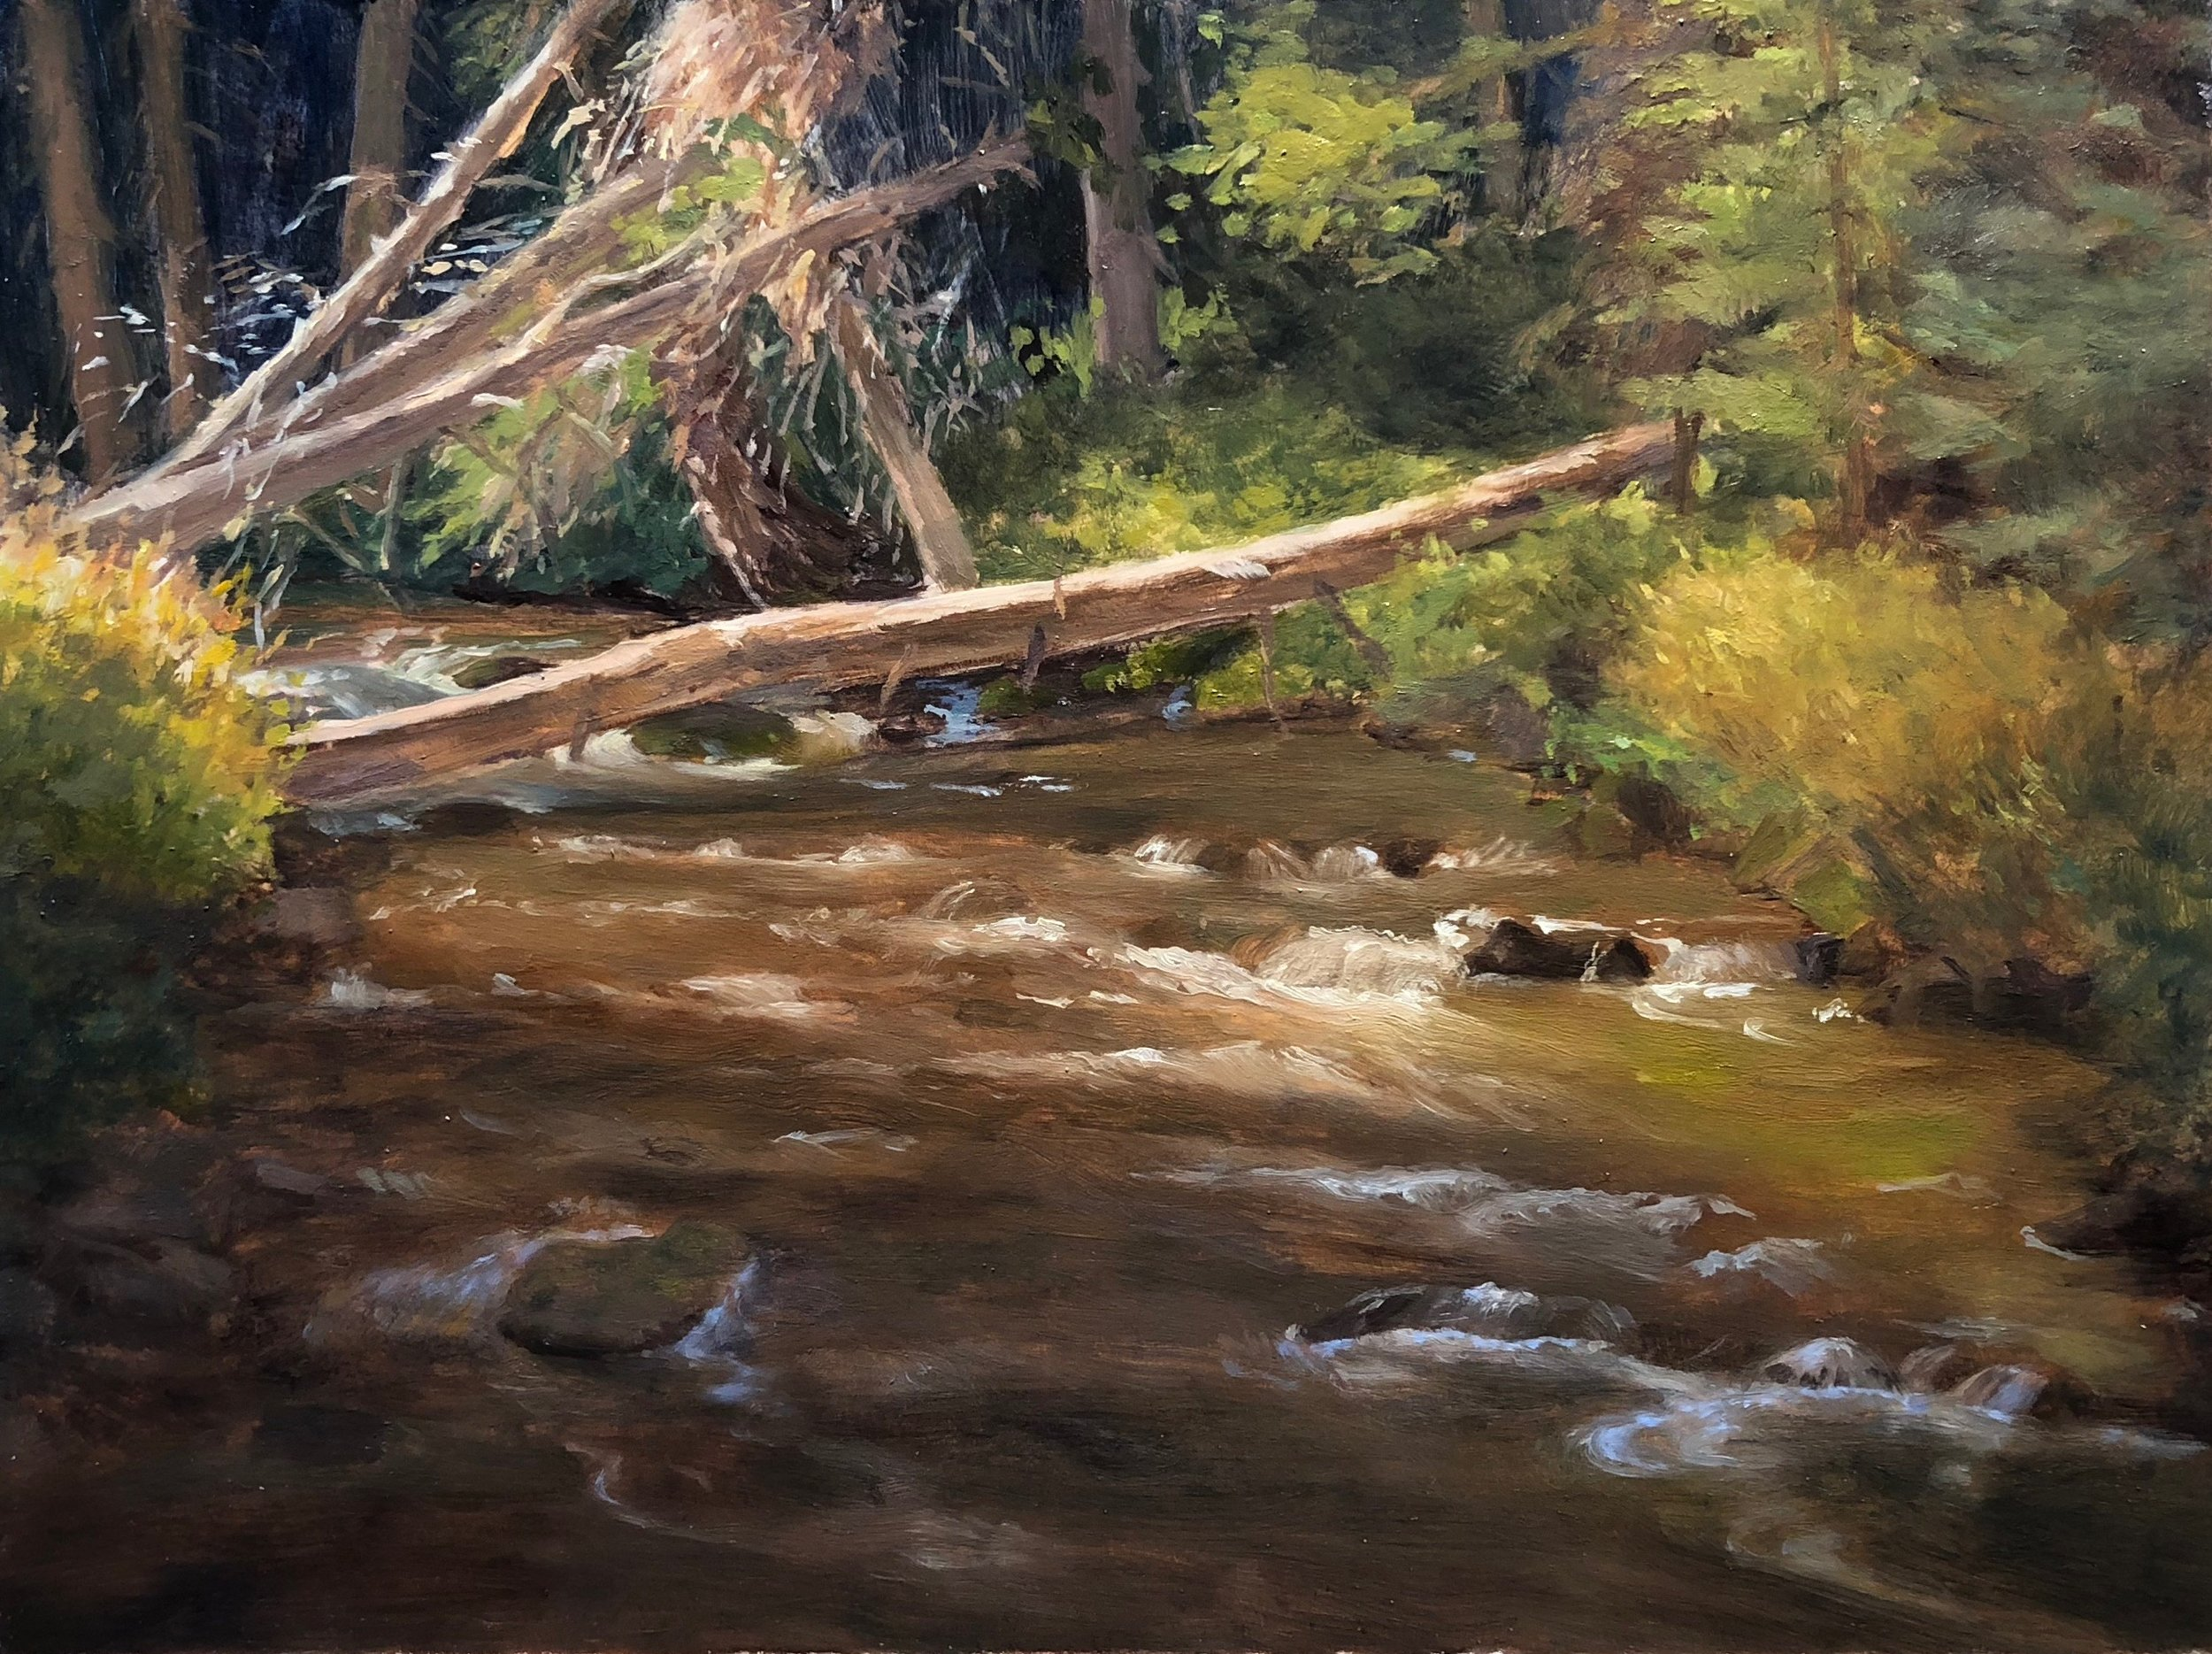 Flat Creek in the Forest 2018 6 by 8 inches Oil on paper mounted on panel